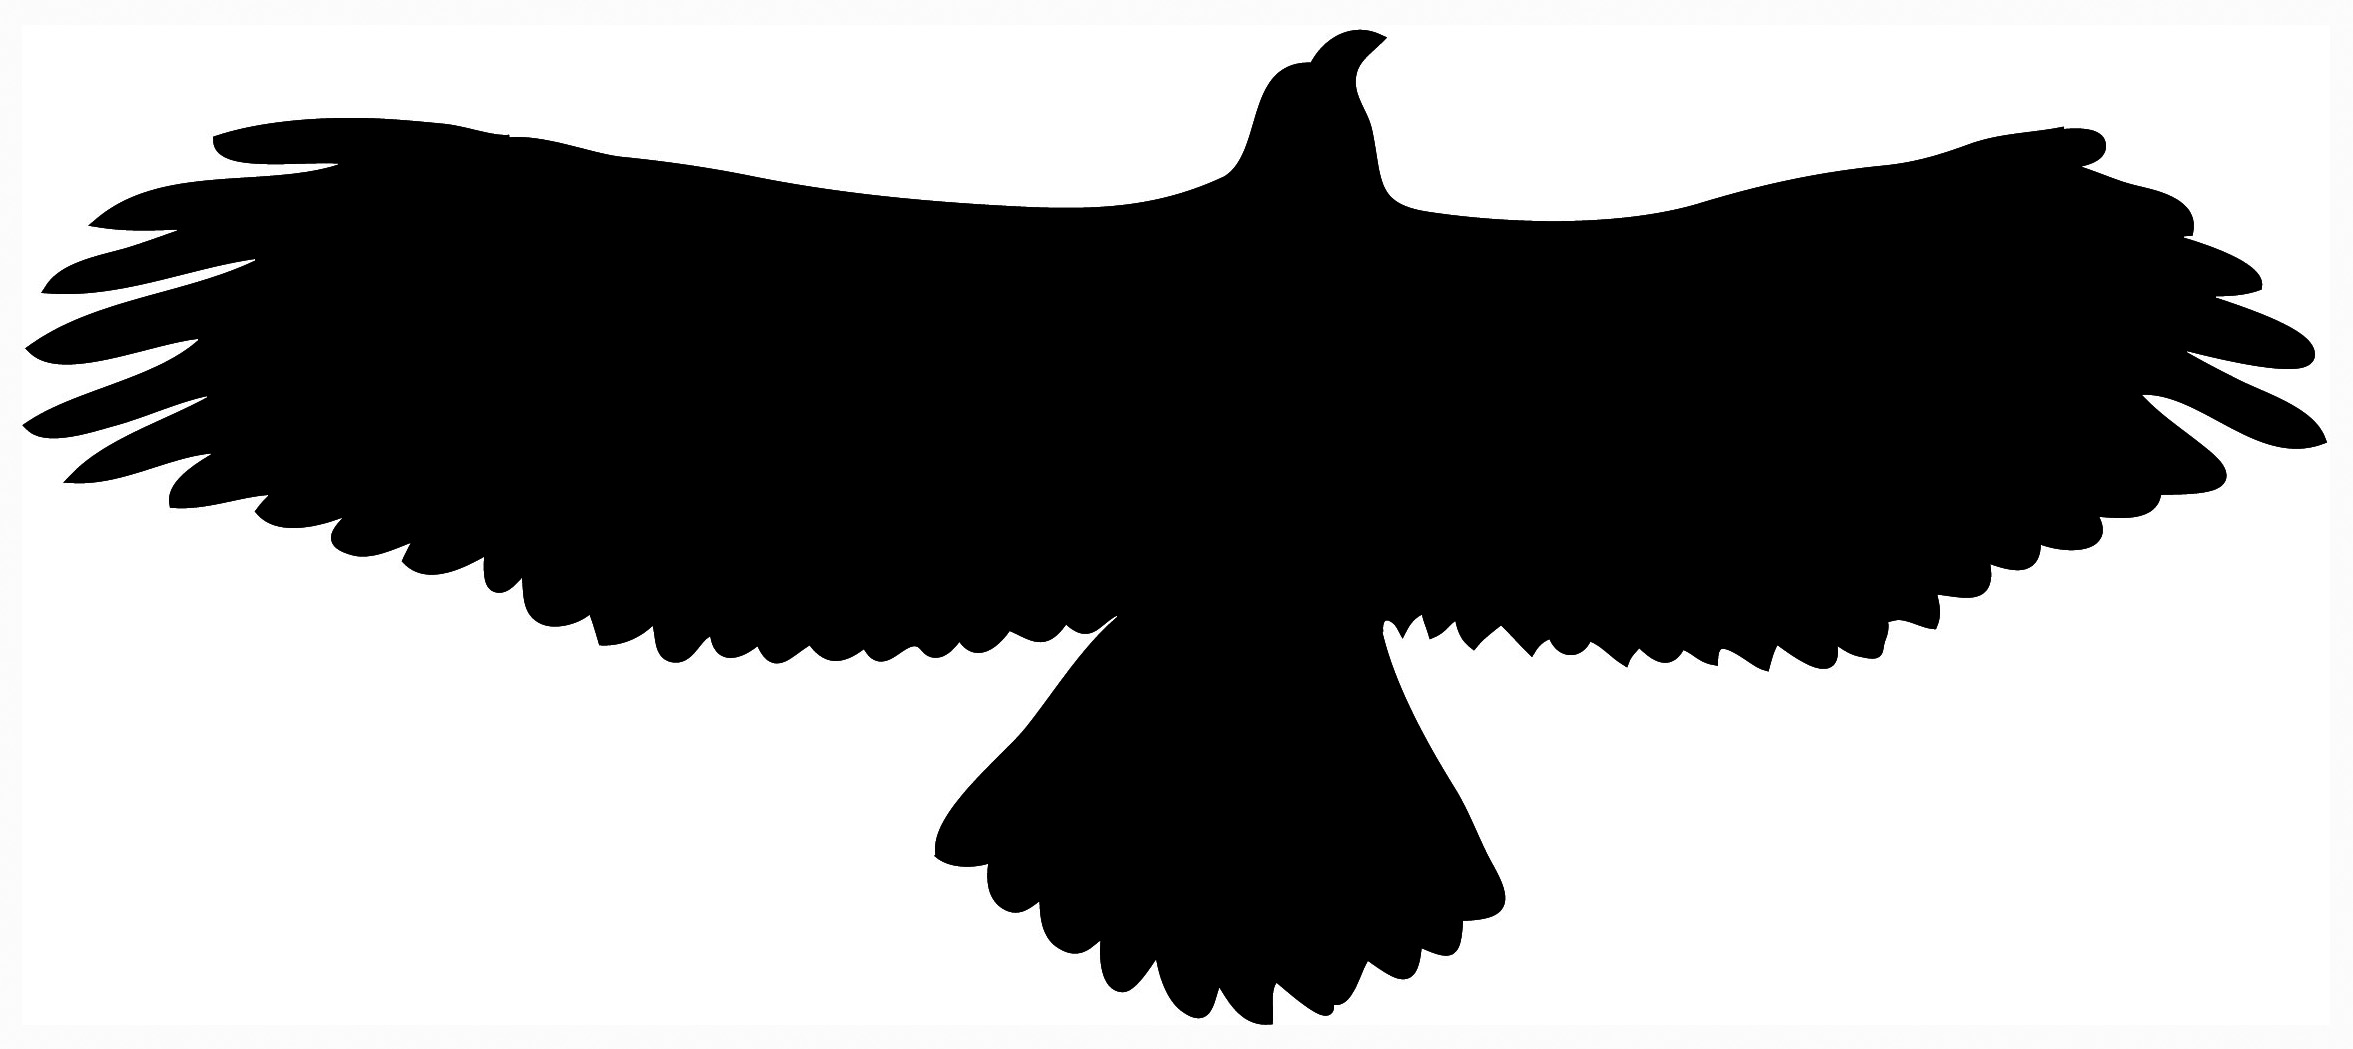 eagle bird clip art - photo #45